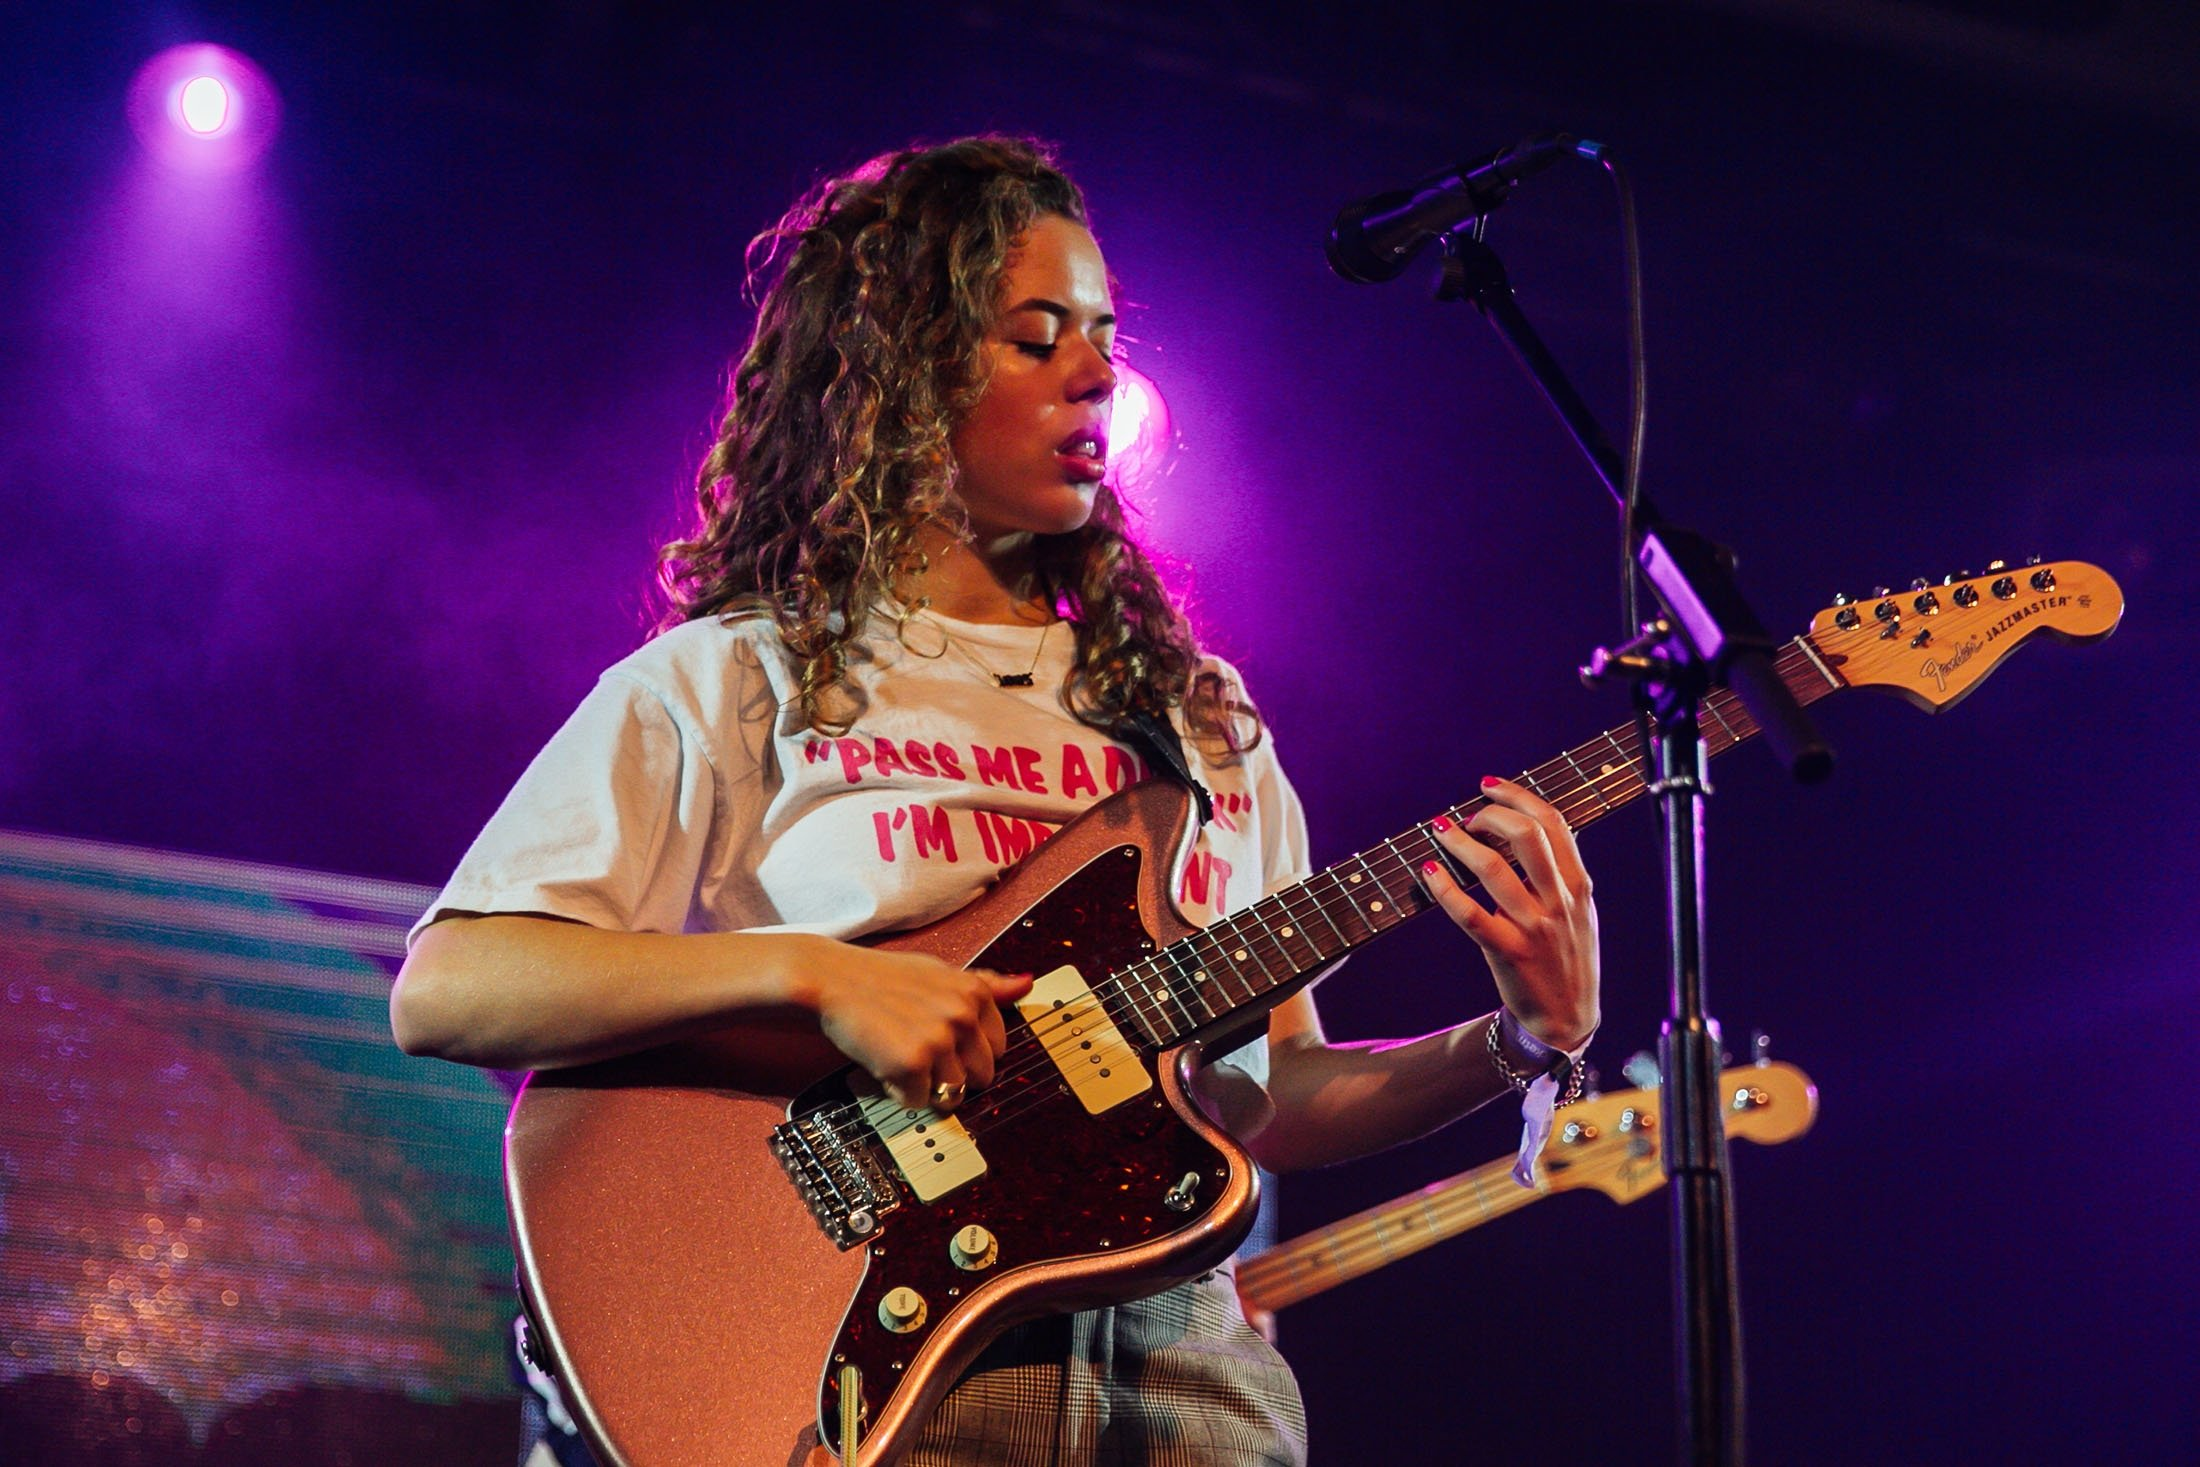 Nilüfer Yanya performs on stage at SWN Festival 2019 on October 18, 2019 in Cardiff, Wales. (Getty Images/ Mike Lewis Photography/Redferns)